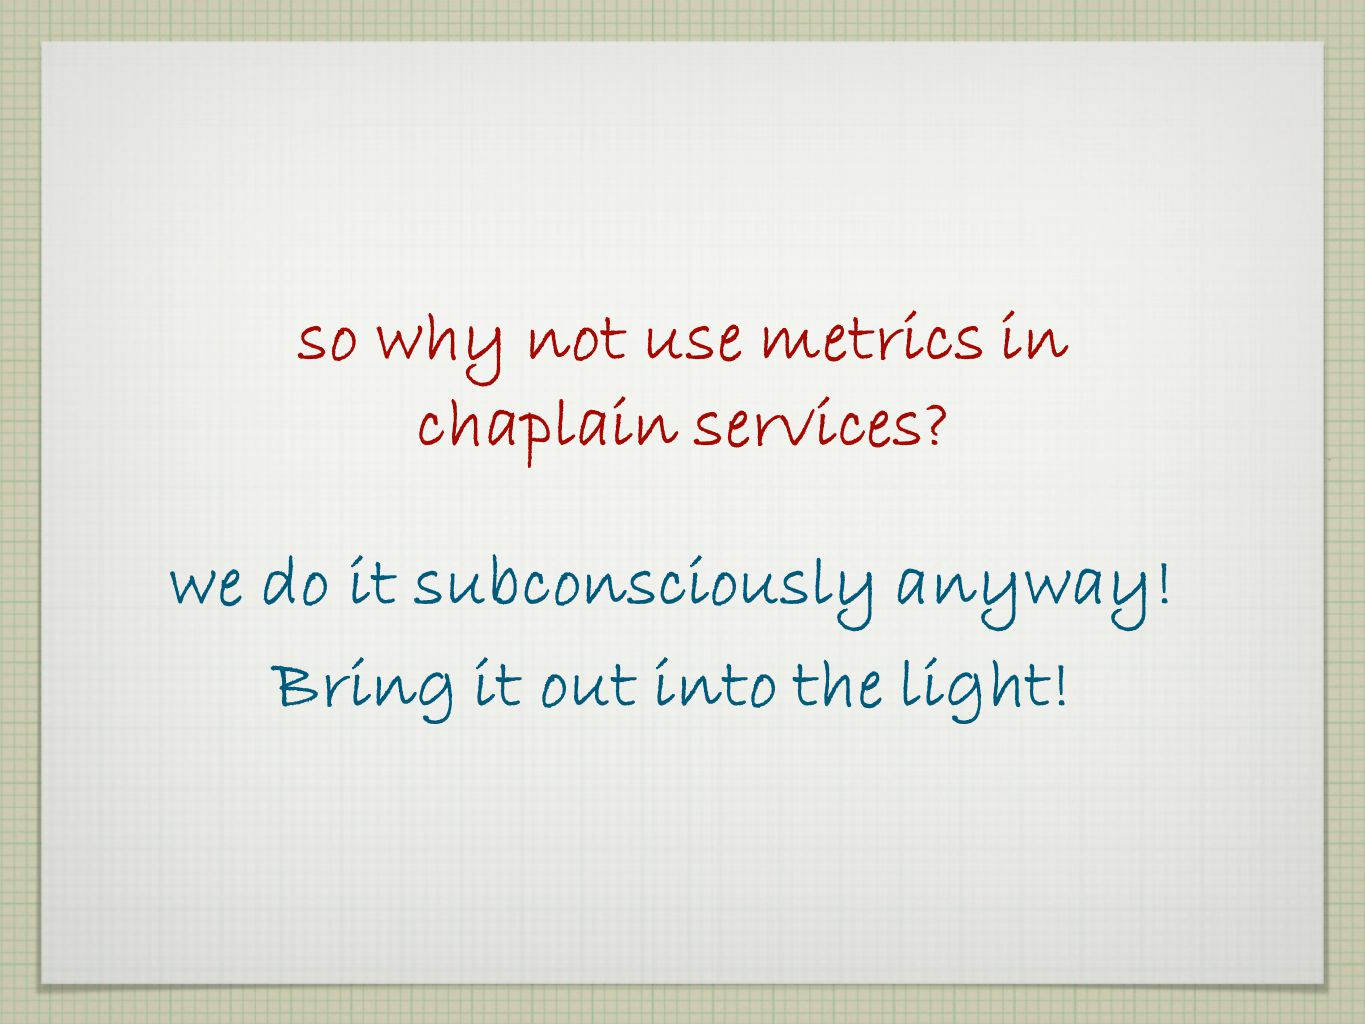 so why not use metrics in chaplain services